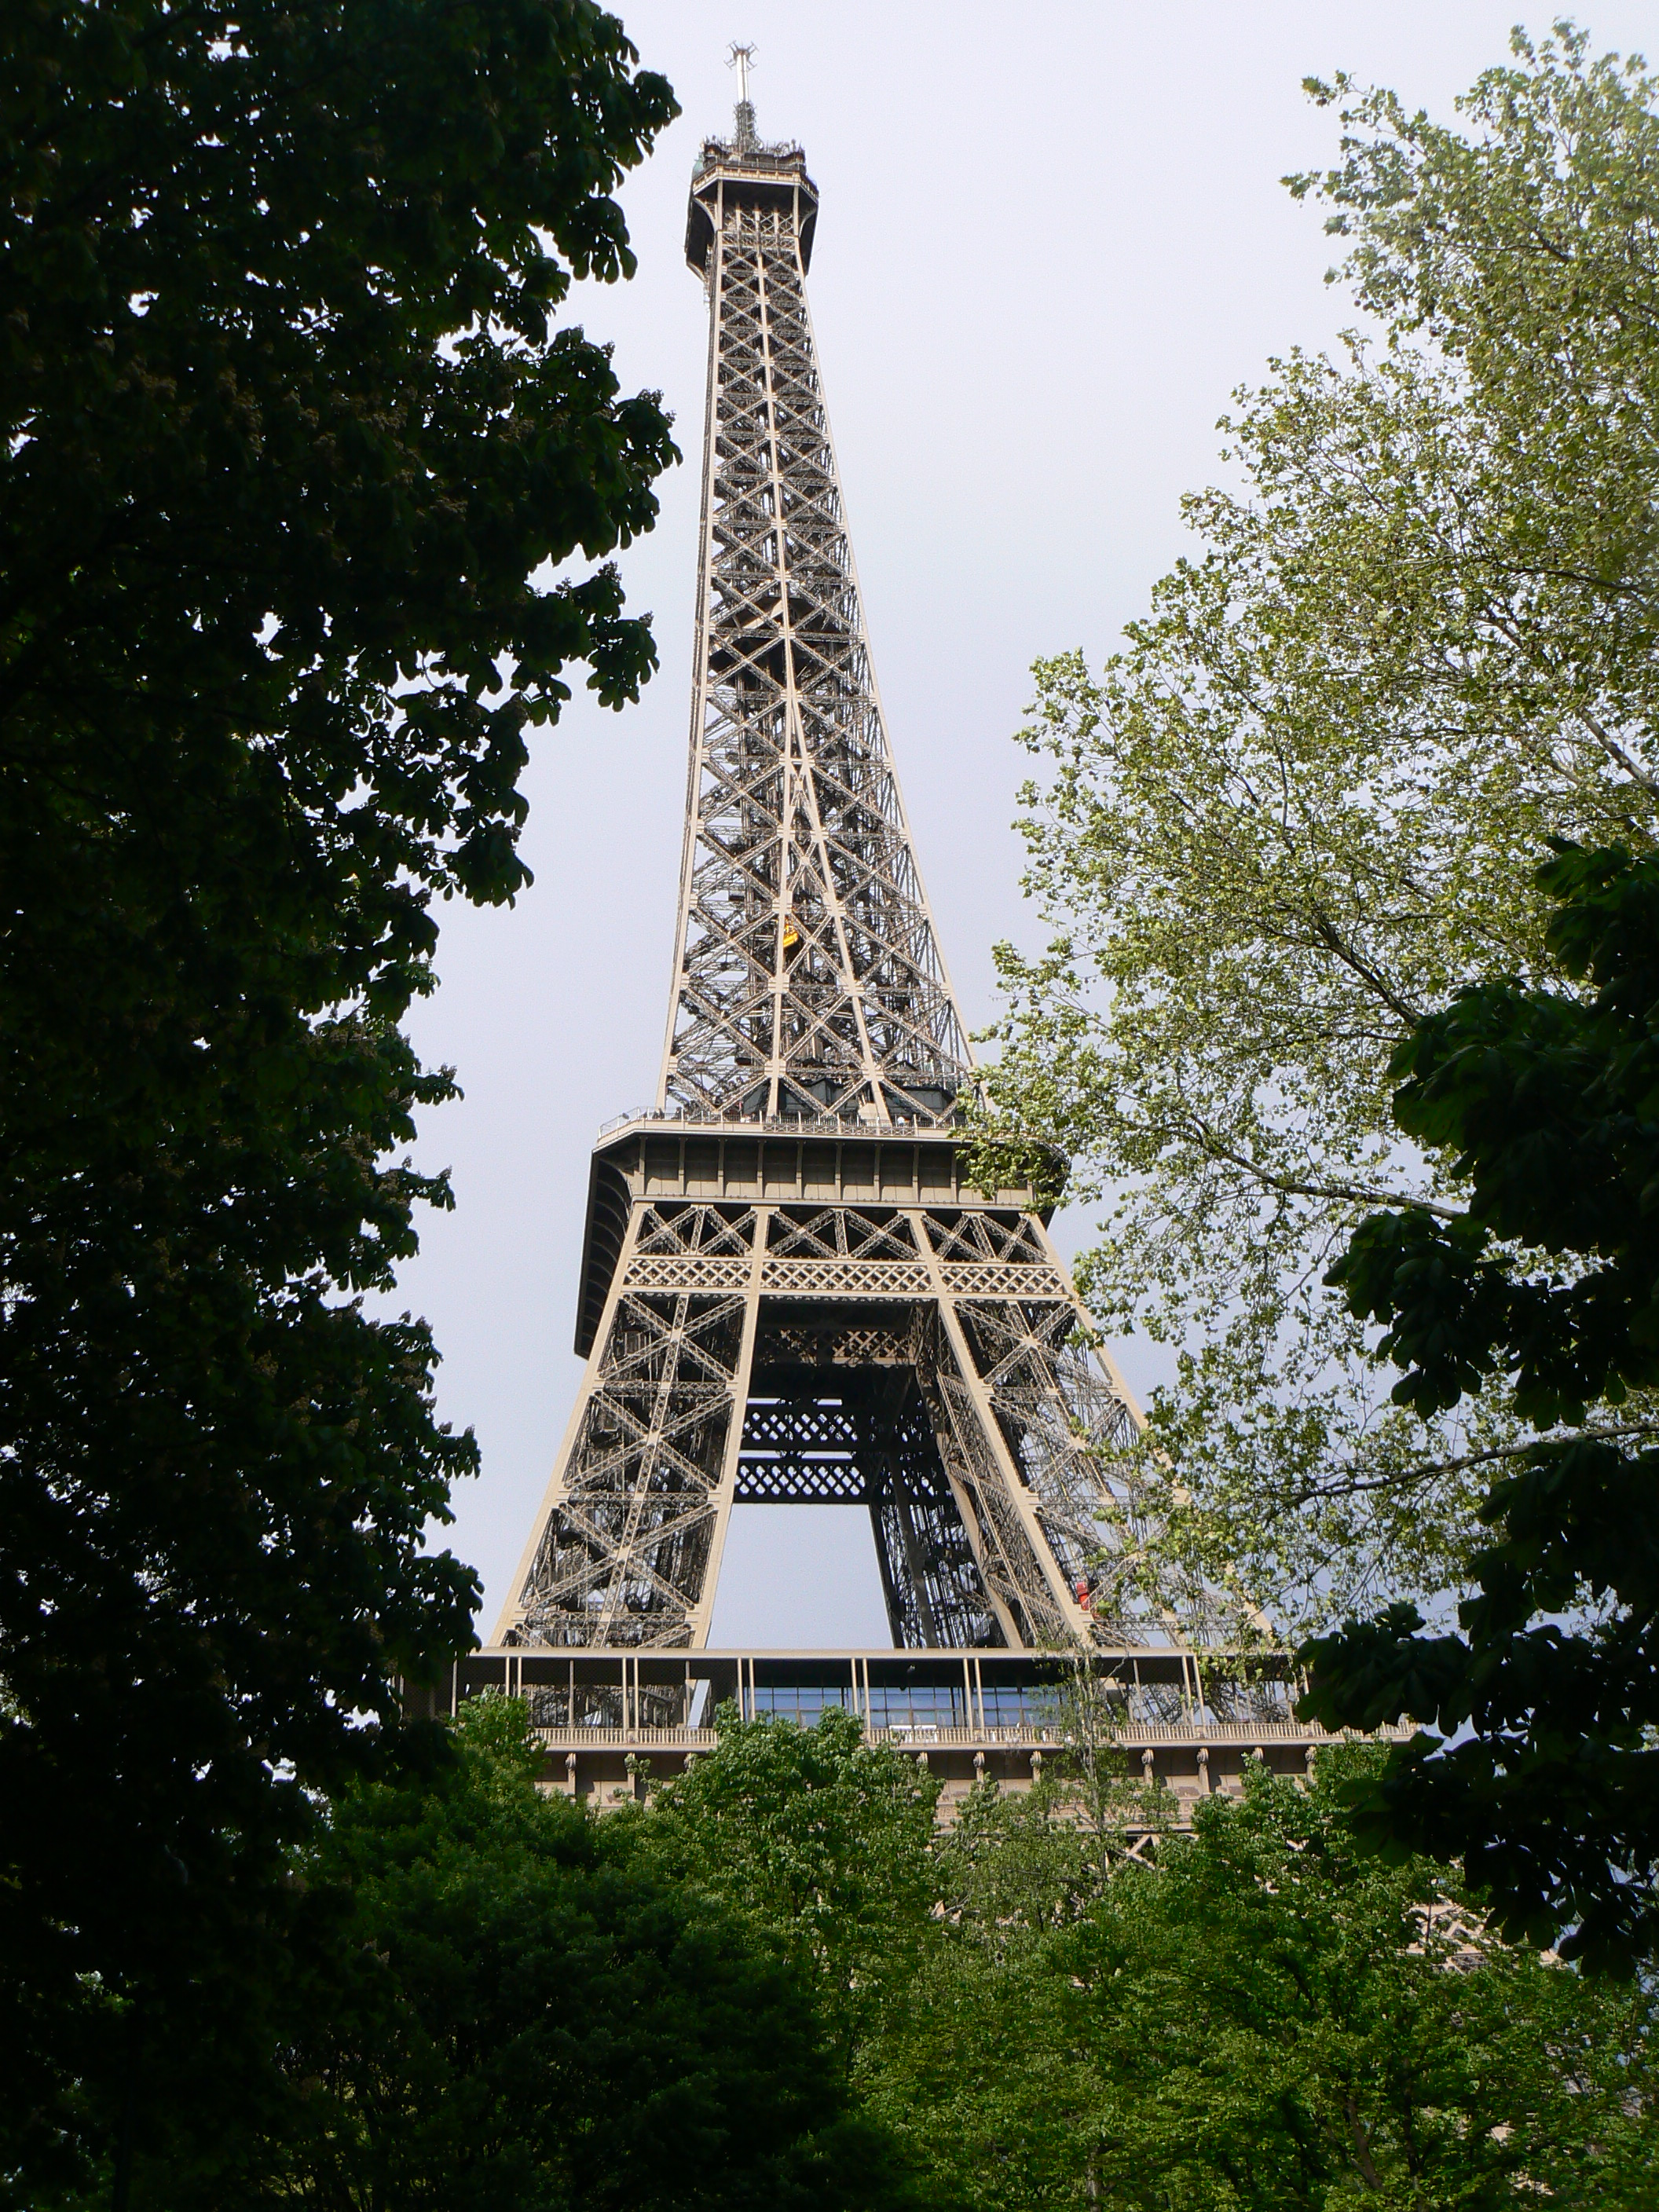 View of Eiffel Tower